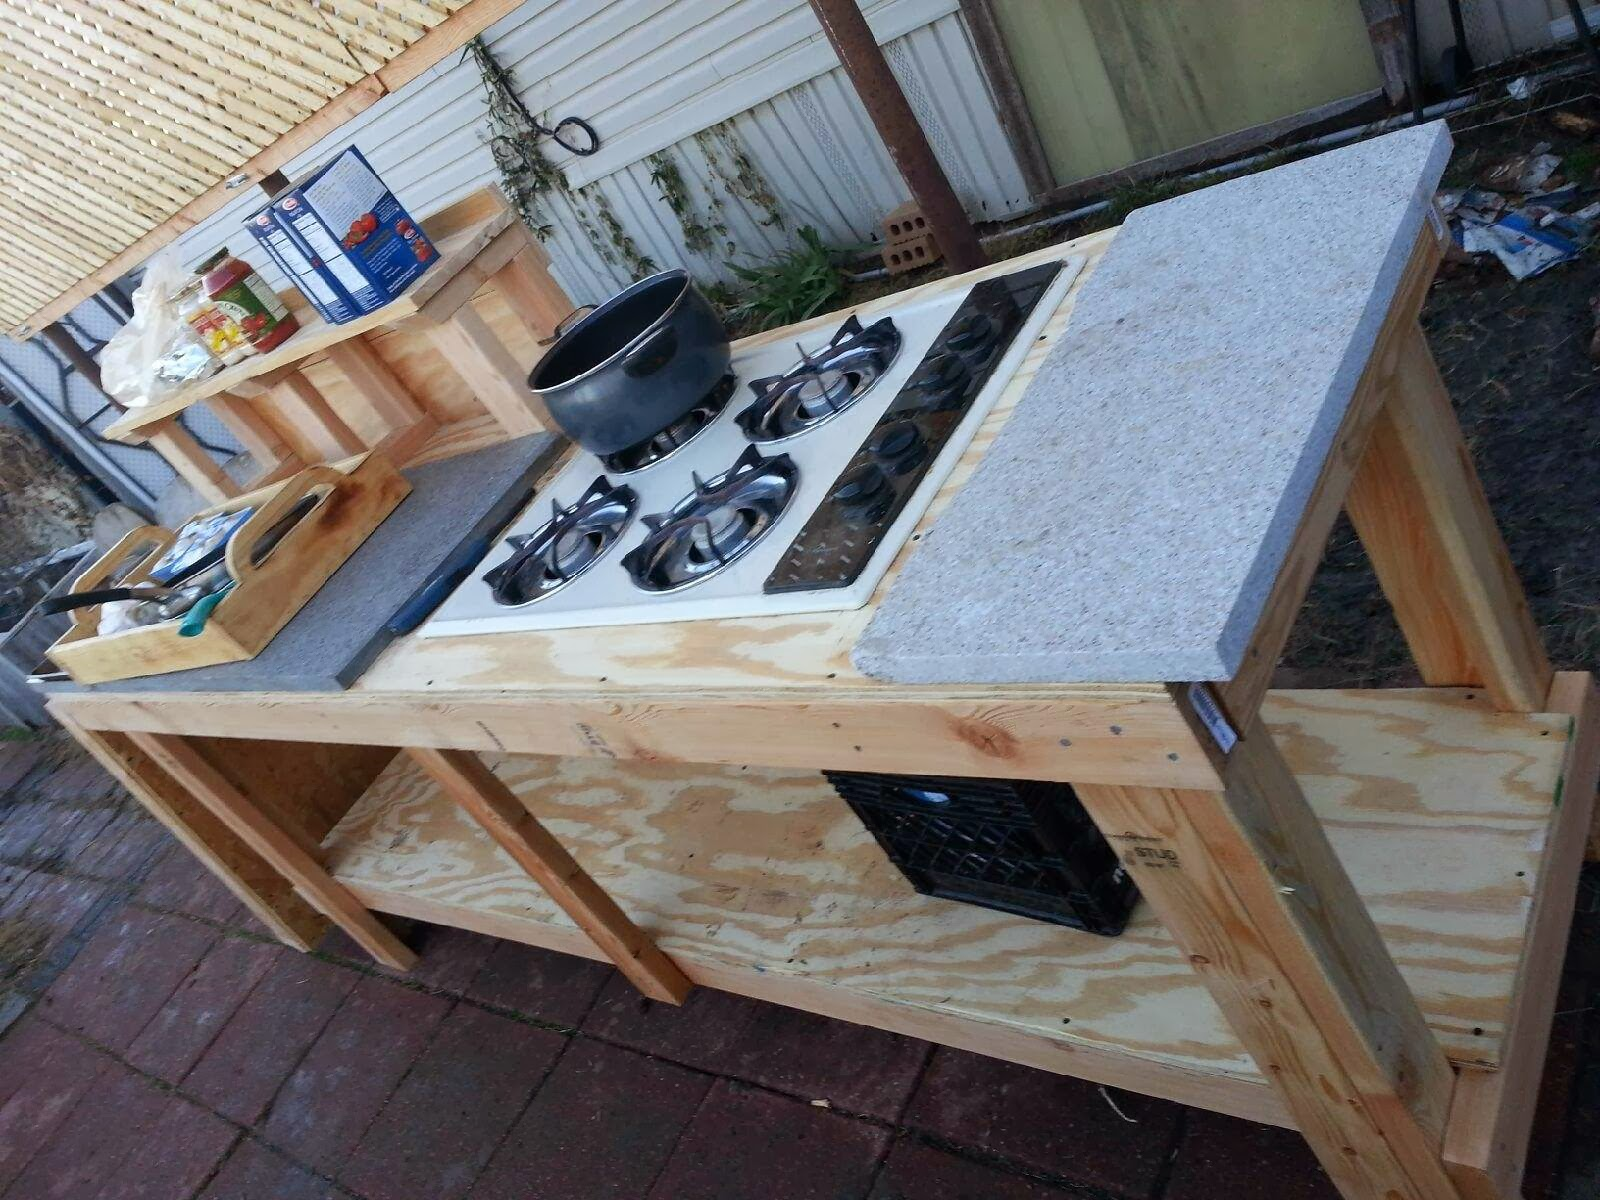 Modern day redneck december 2013 for Best camping kitchen ideas